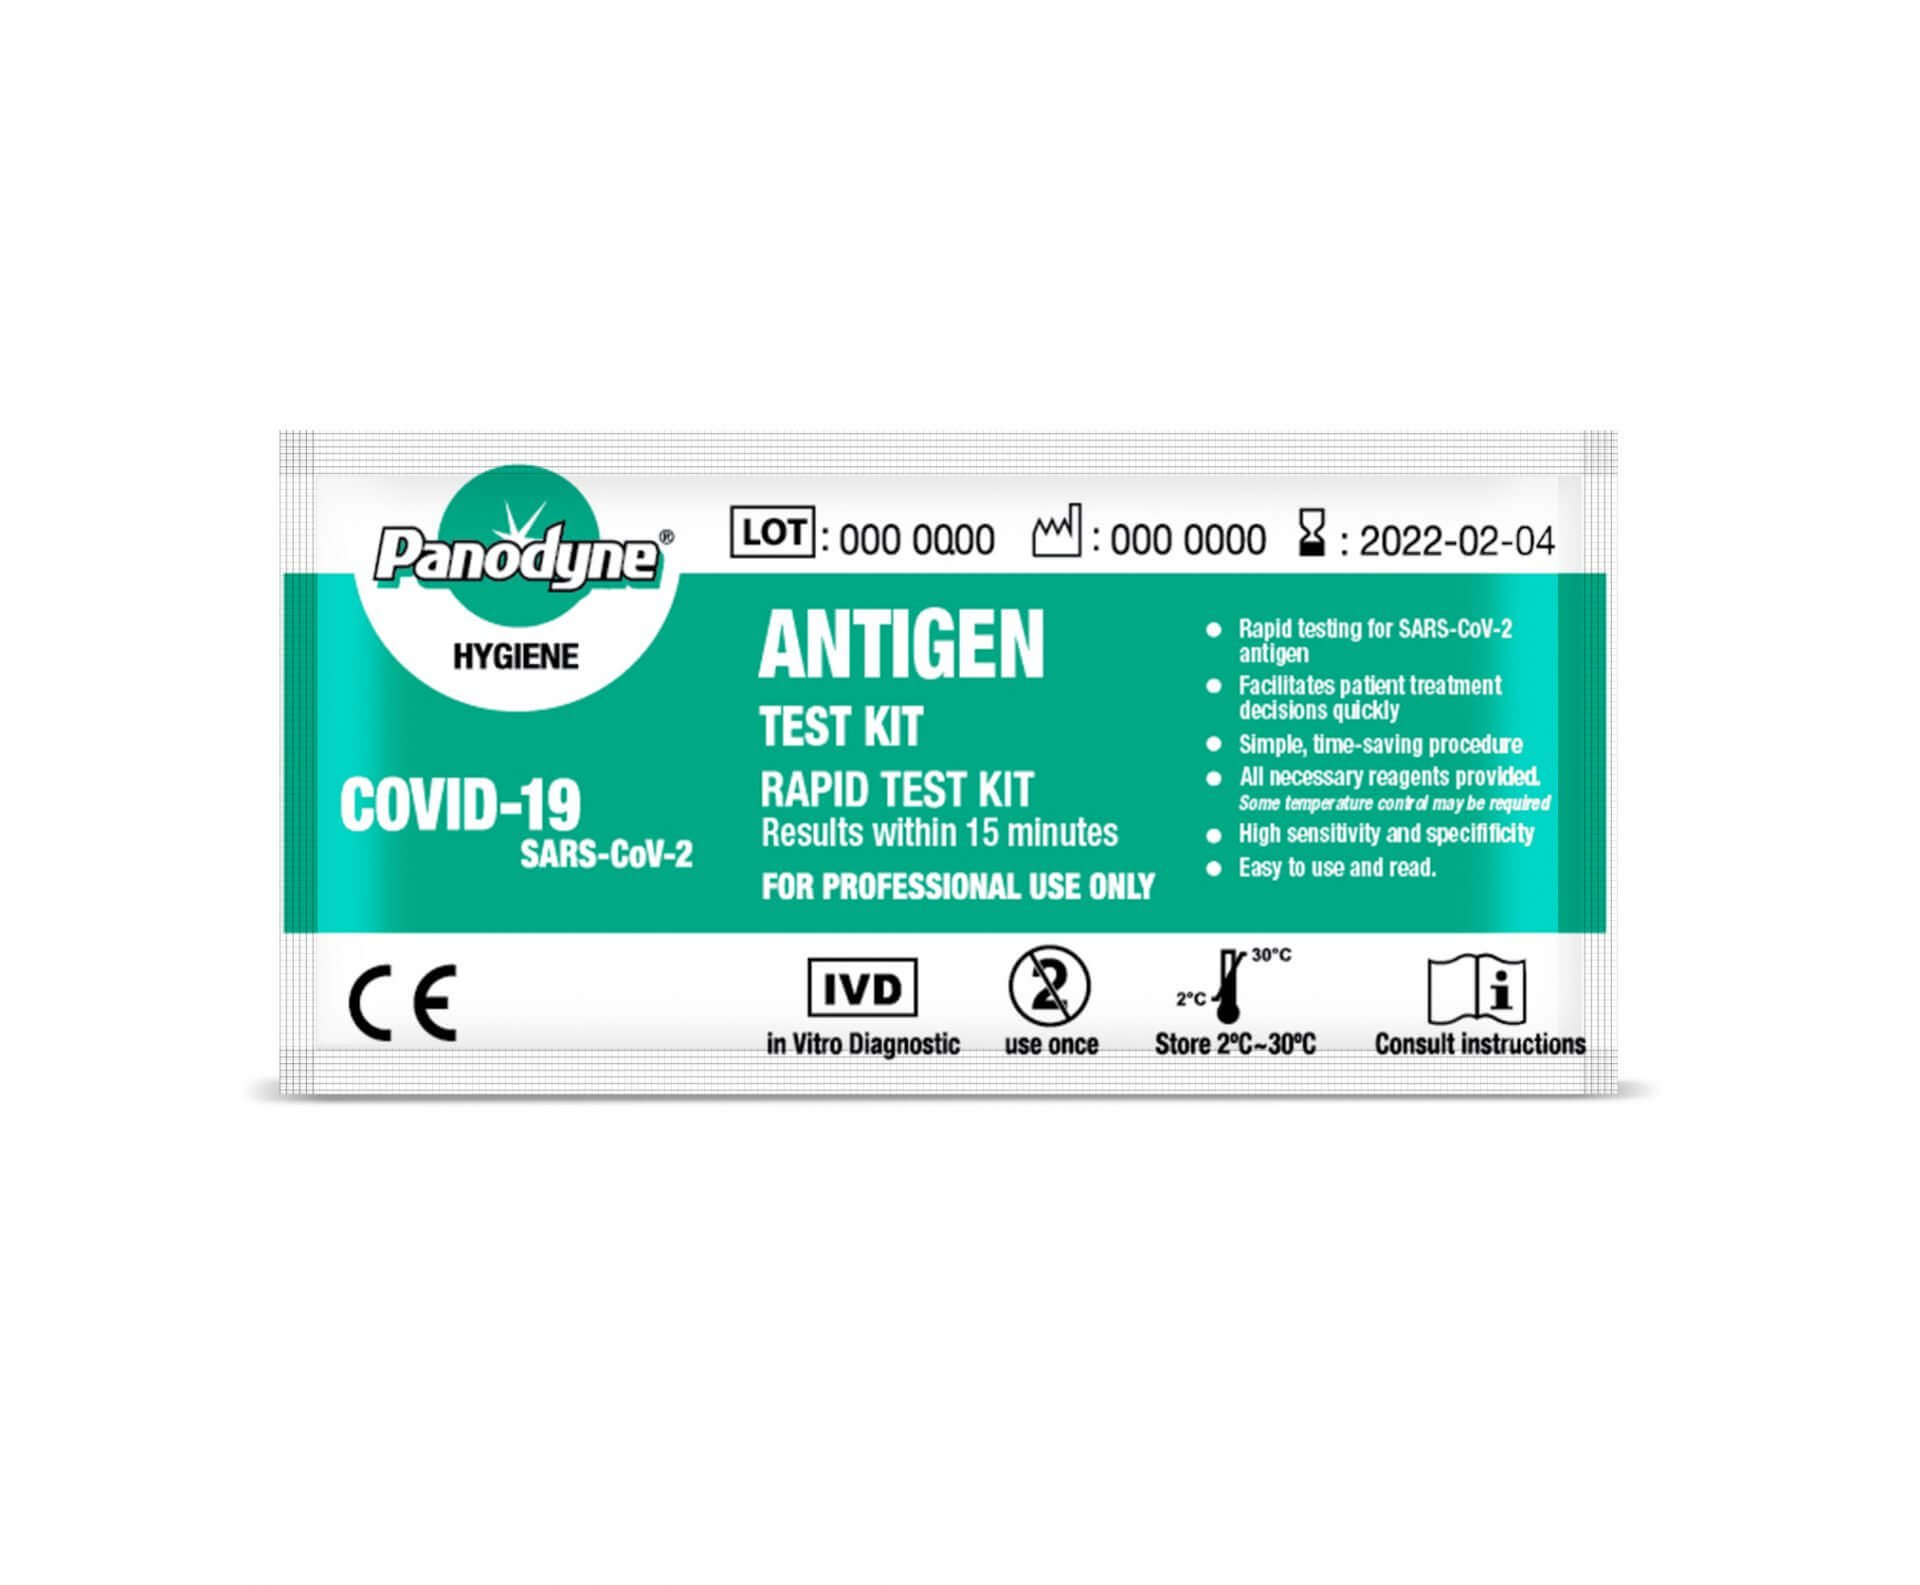 Panodyne Covid-19 Rapid Antigen Test Kit (SINGLE TEST KIT)